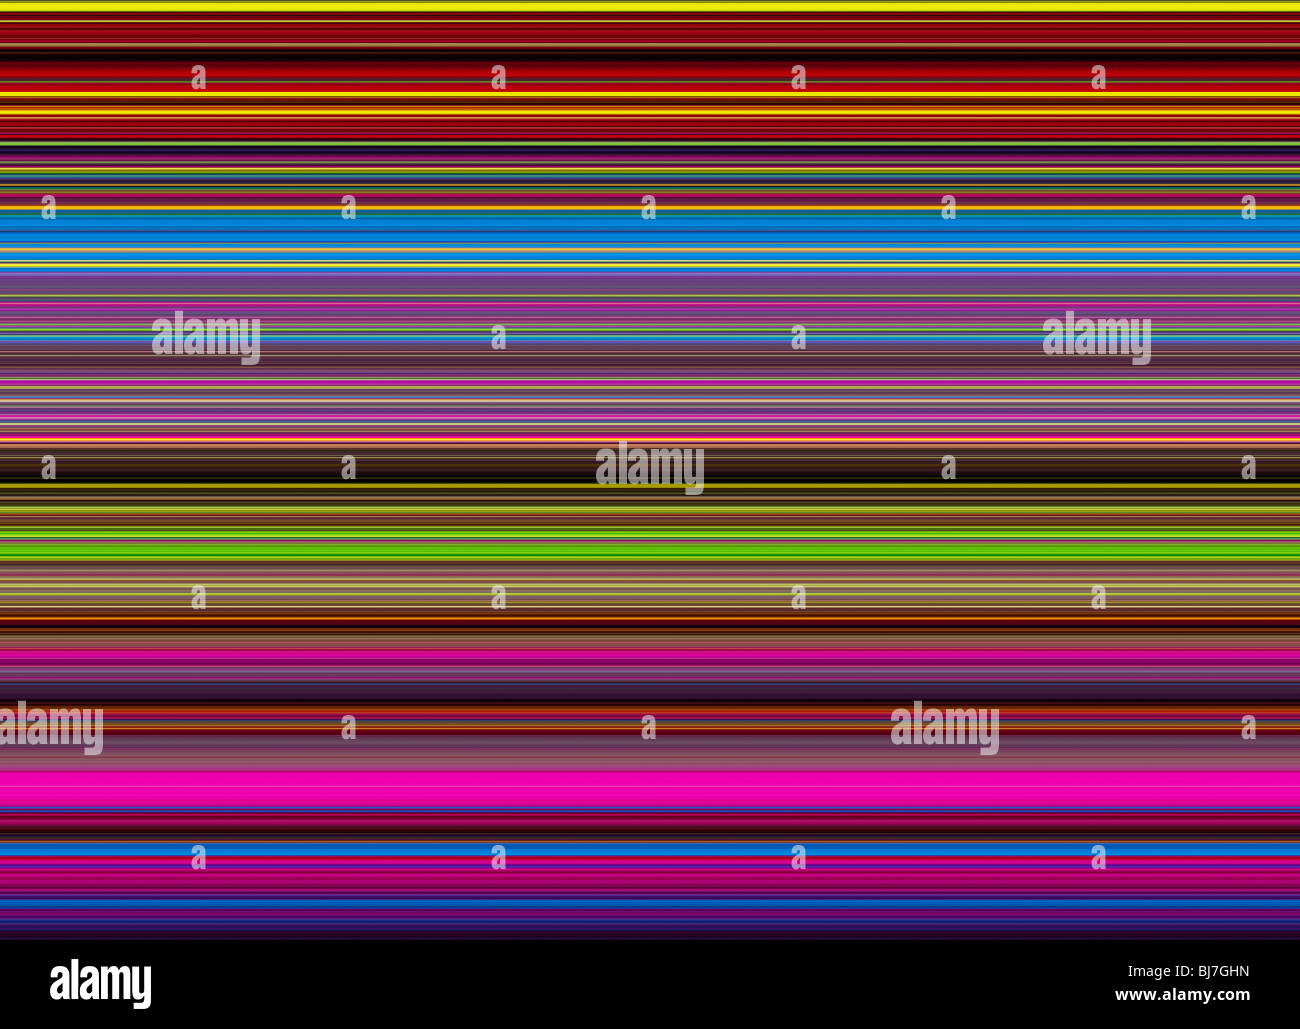 Multicoloured striped lines pattern. Digital illustration crafted from a photograph - Stock Image